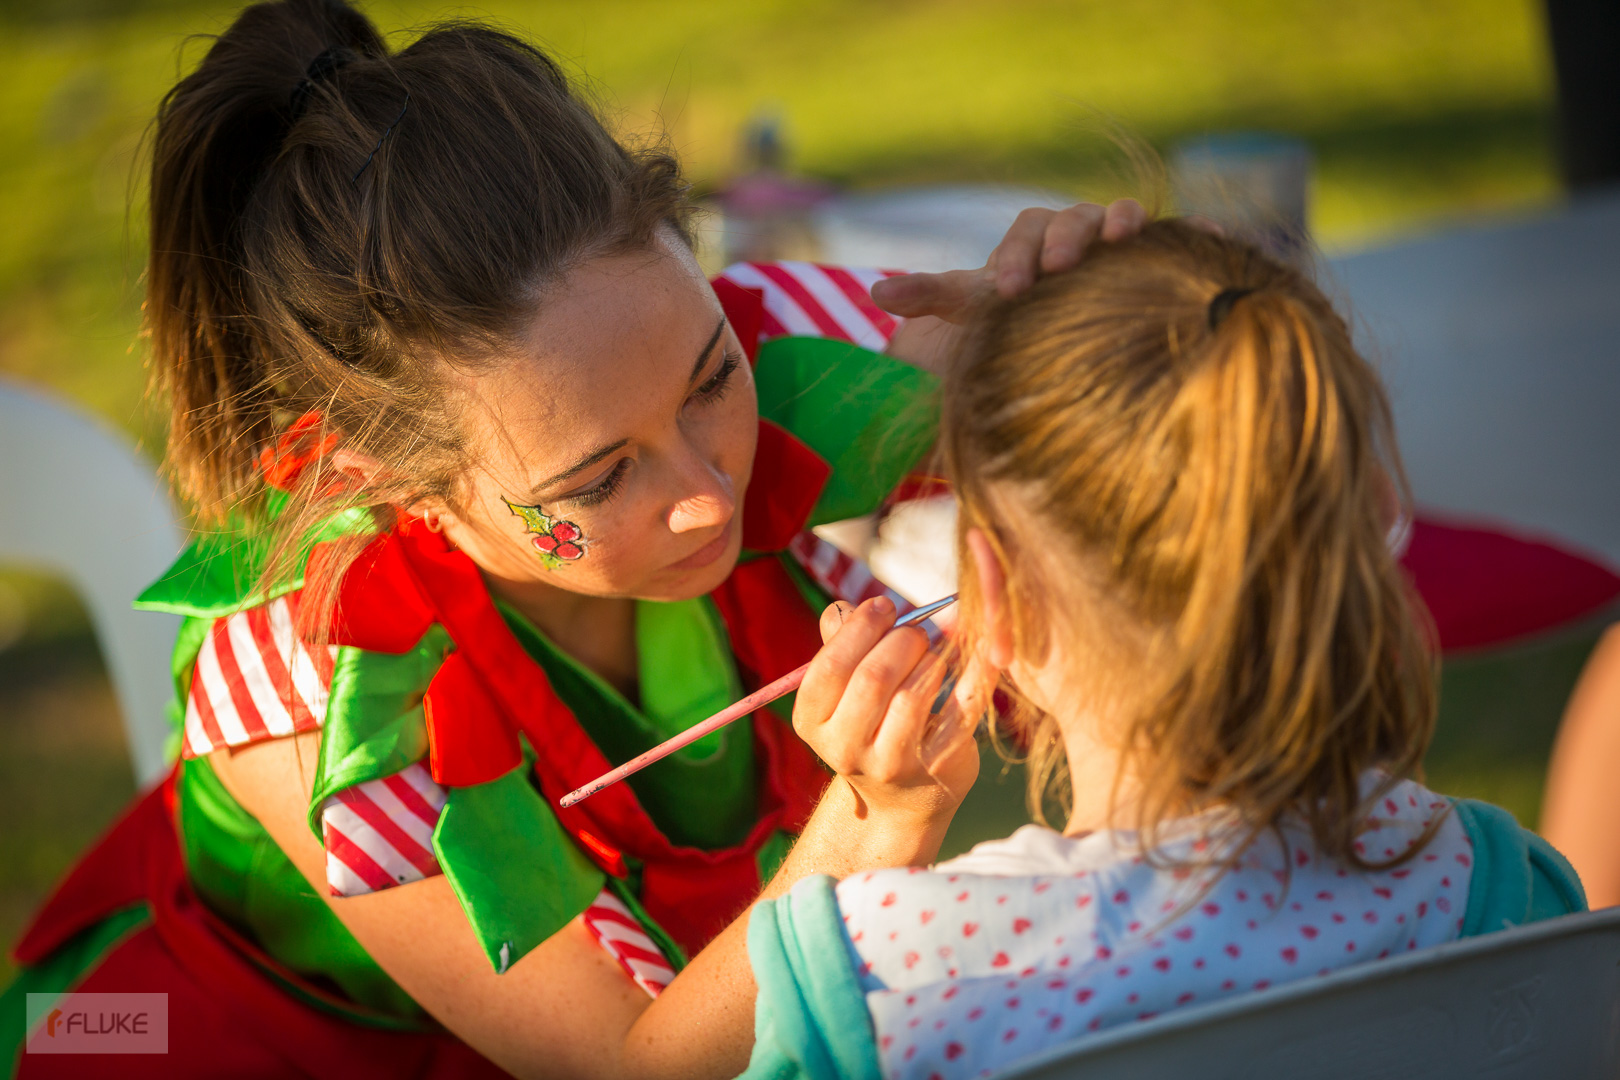 geelong-face-painter-the-party-girl.jpg